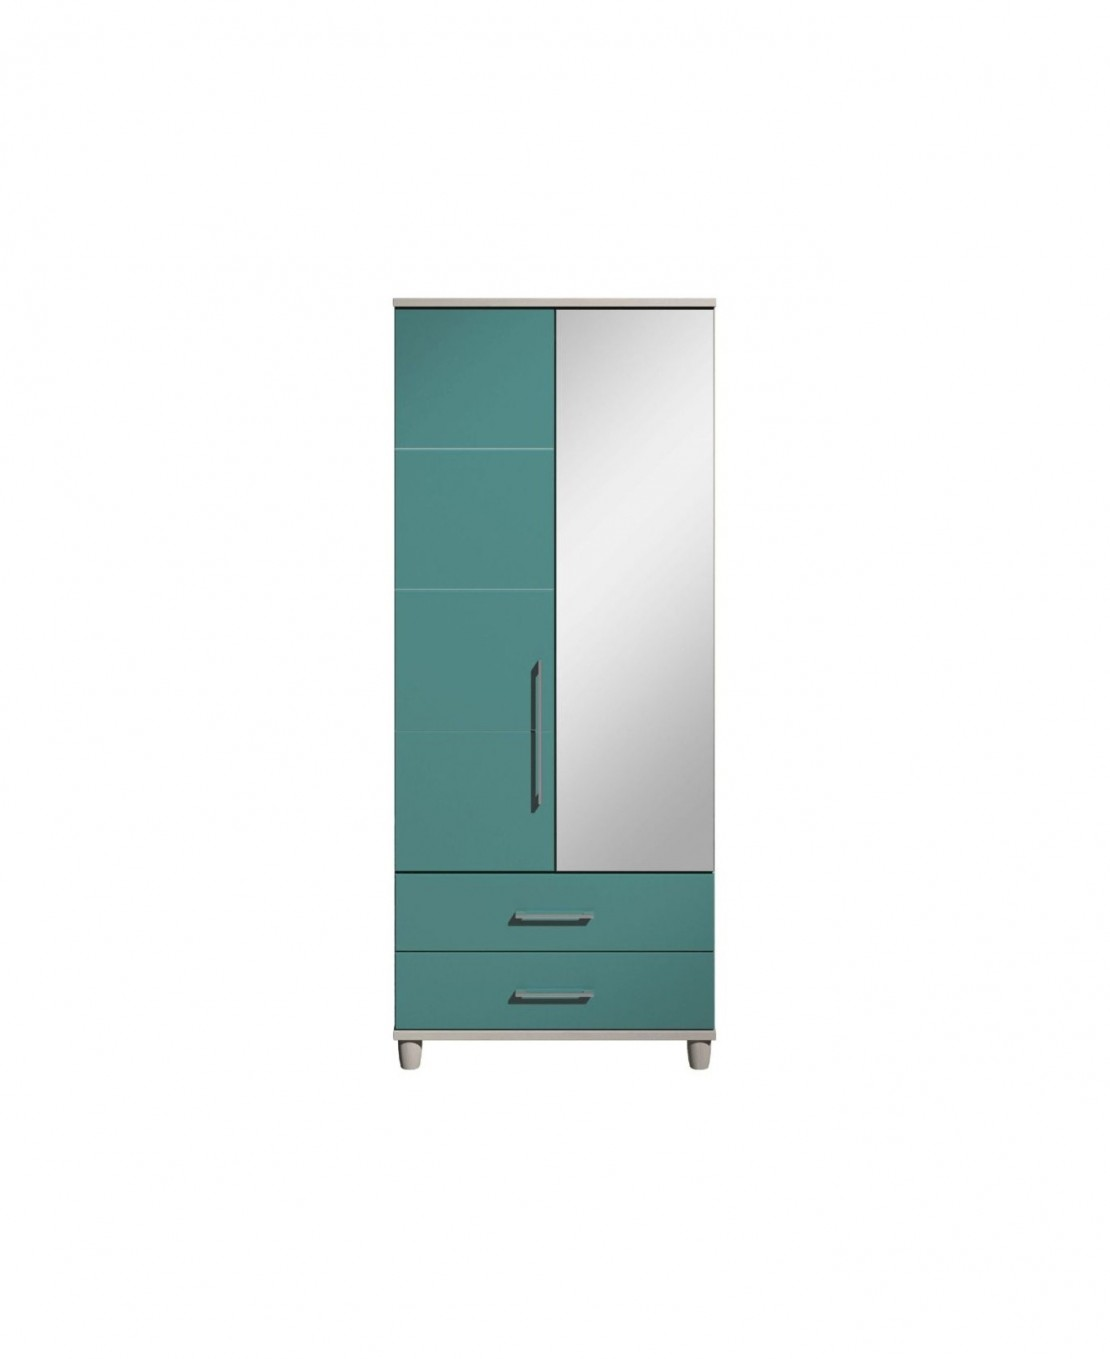 /_images/product-photos/kt-furniture-vardy-2-door-gents-robe-lagoon-a.jpg